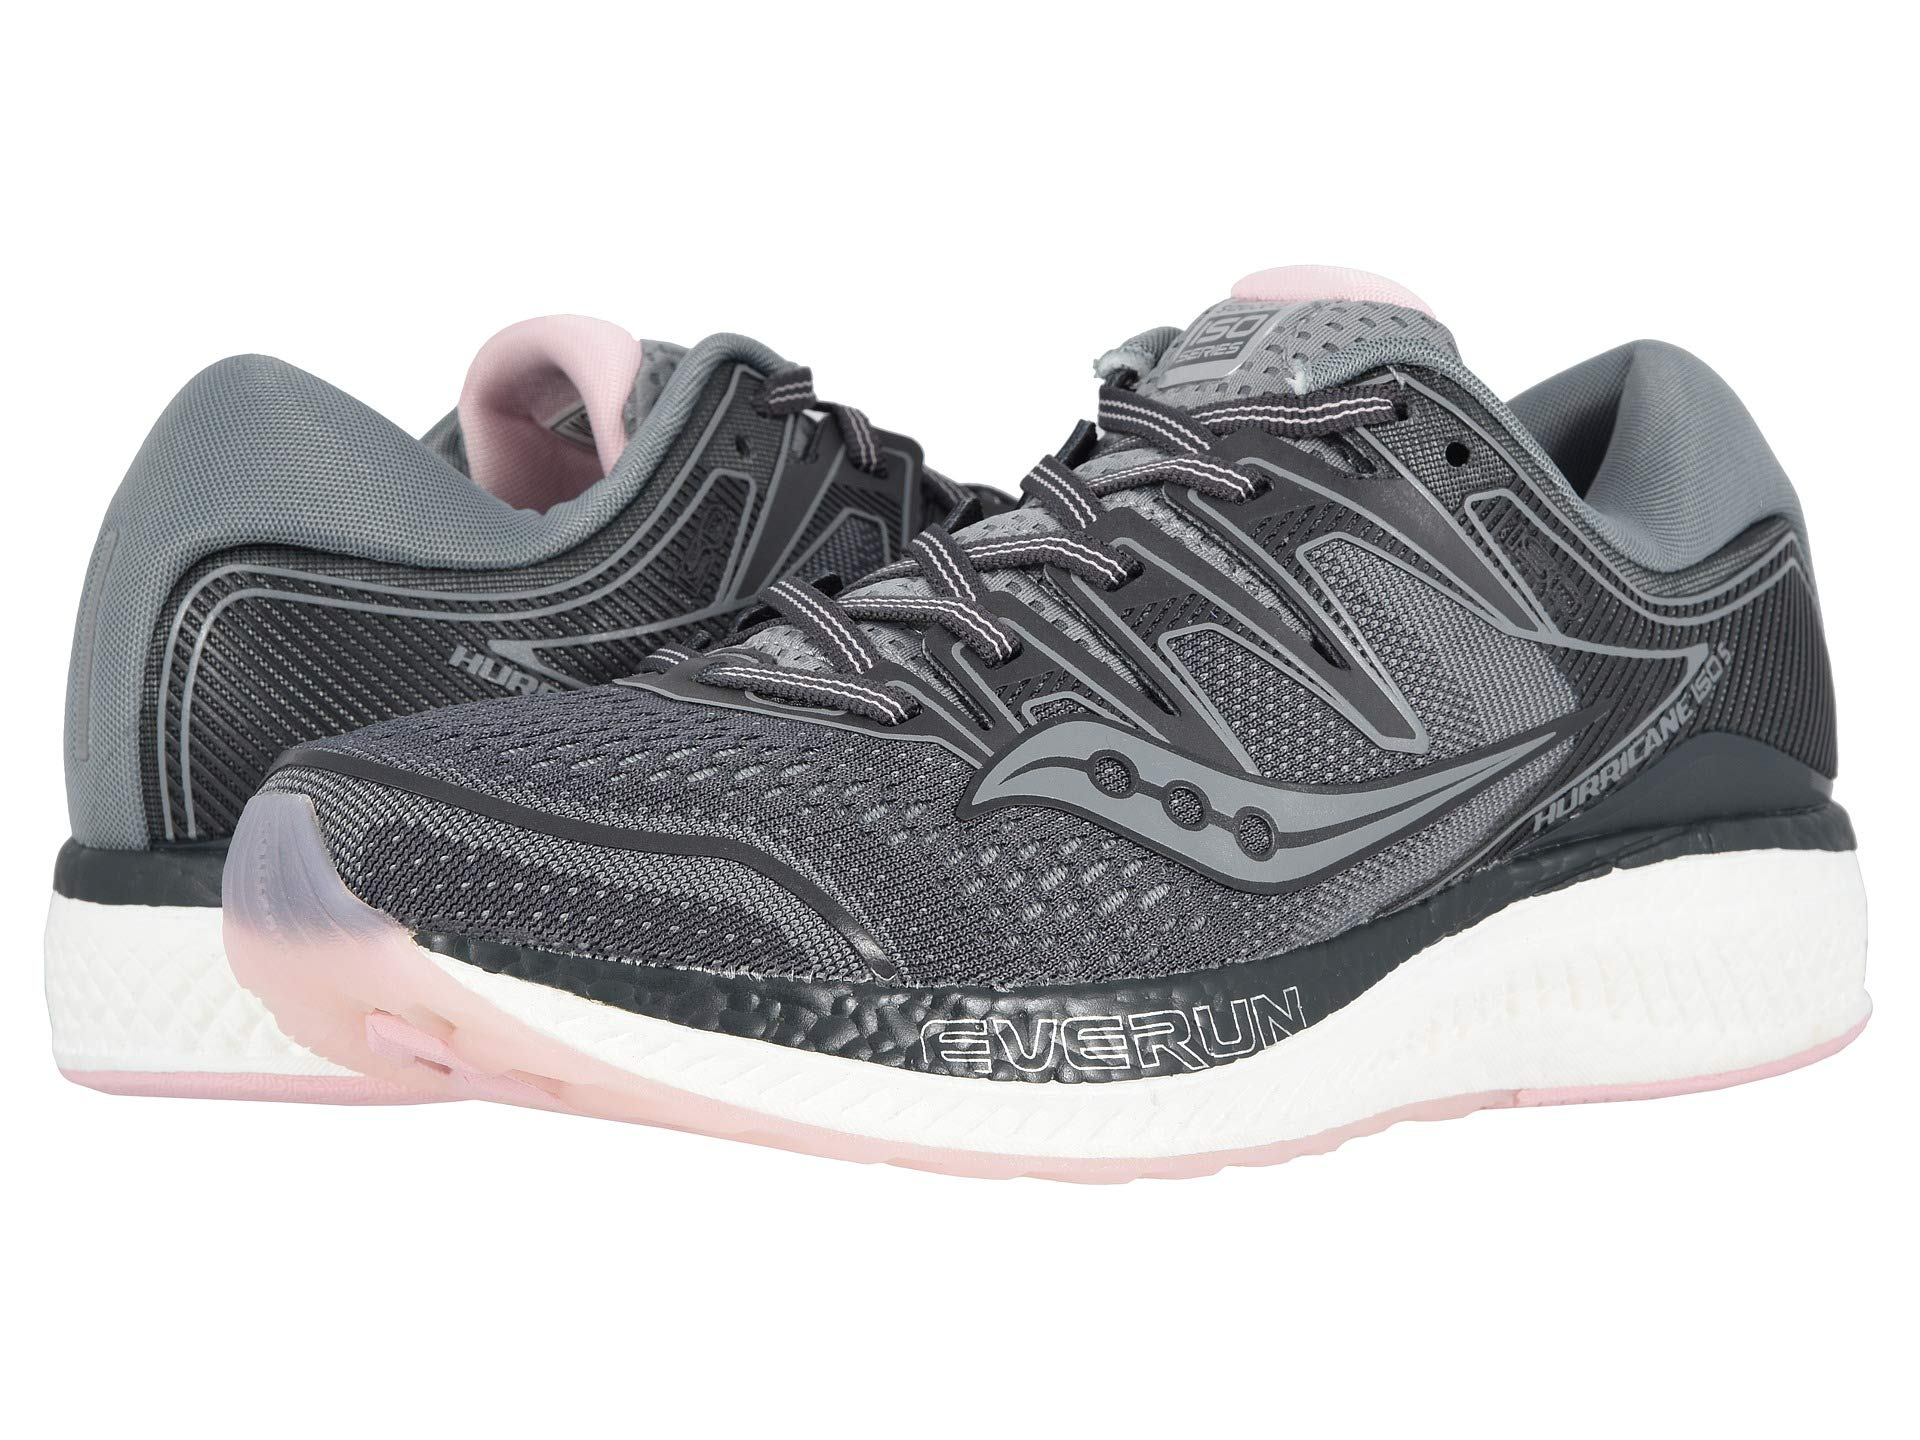 a3616bc5134 Best Running Shoes for Plantar Fasciitis in 2019 - The Wired Runner